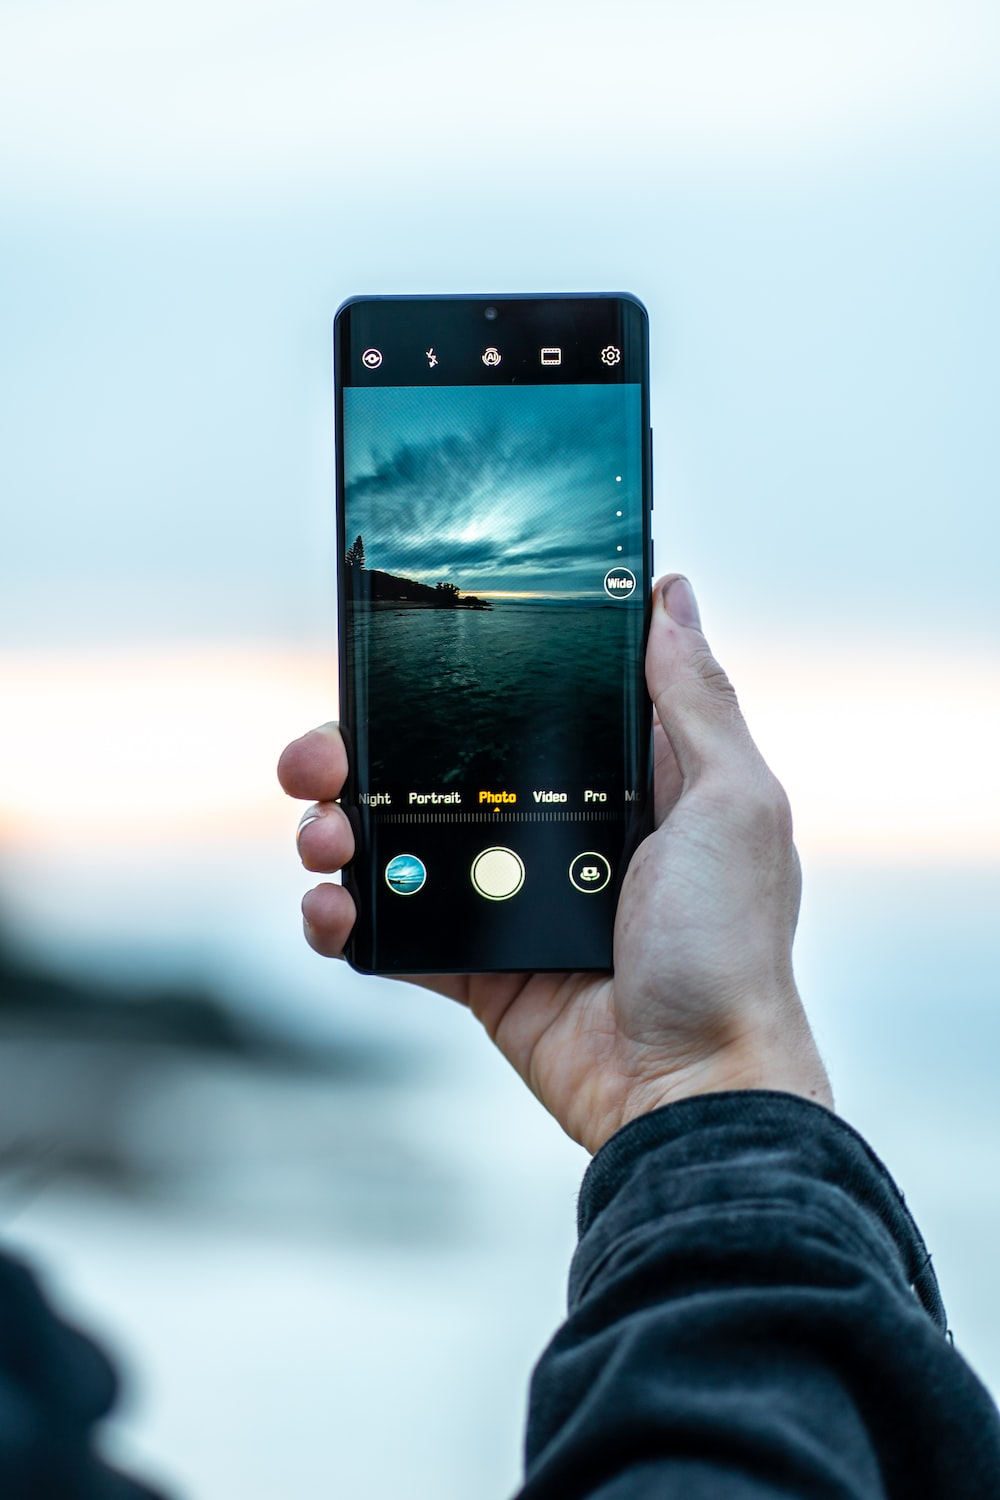 person using smartphone taking photo of body of water